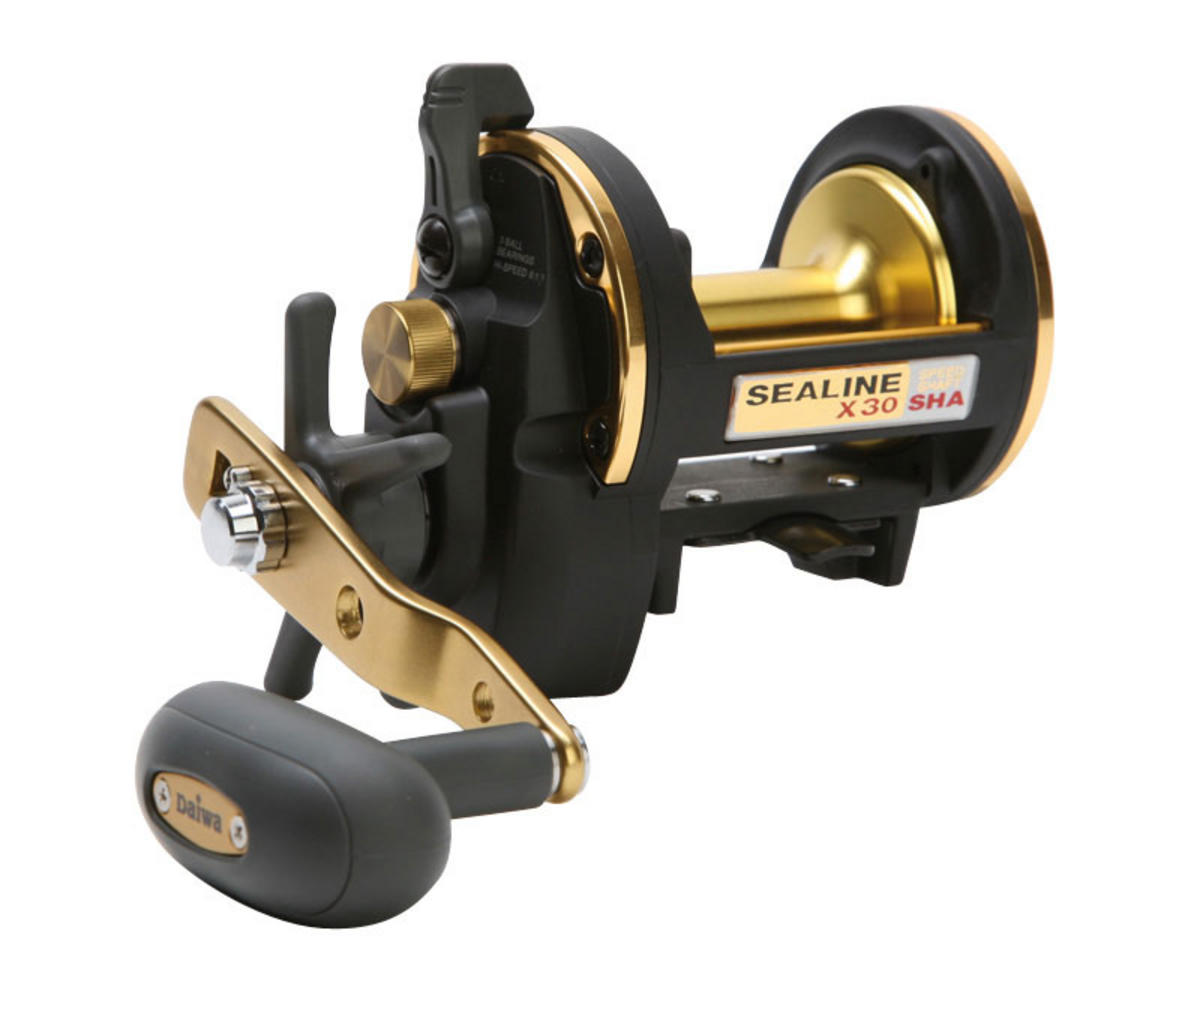 Daiwa Sealine X 40SHA SLOSH Multiplier Fishing Reel - SLX40SHA